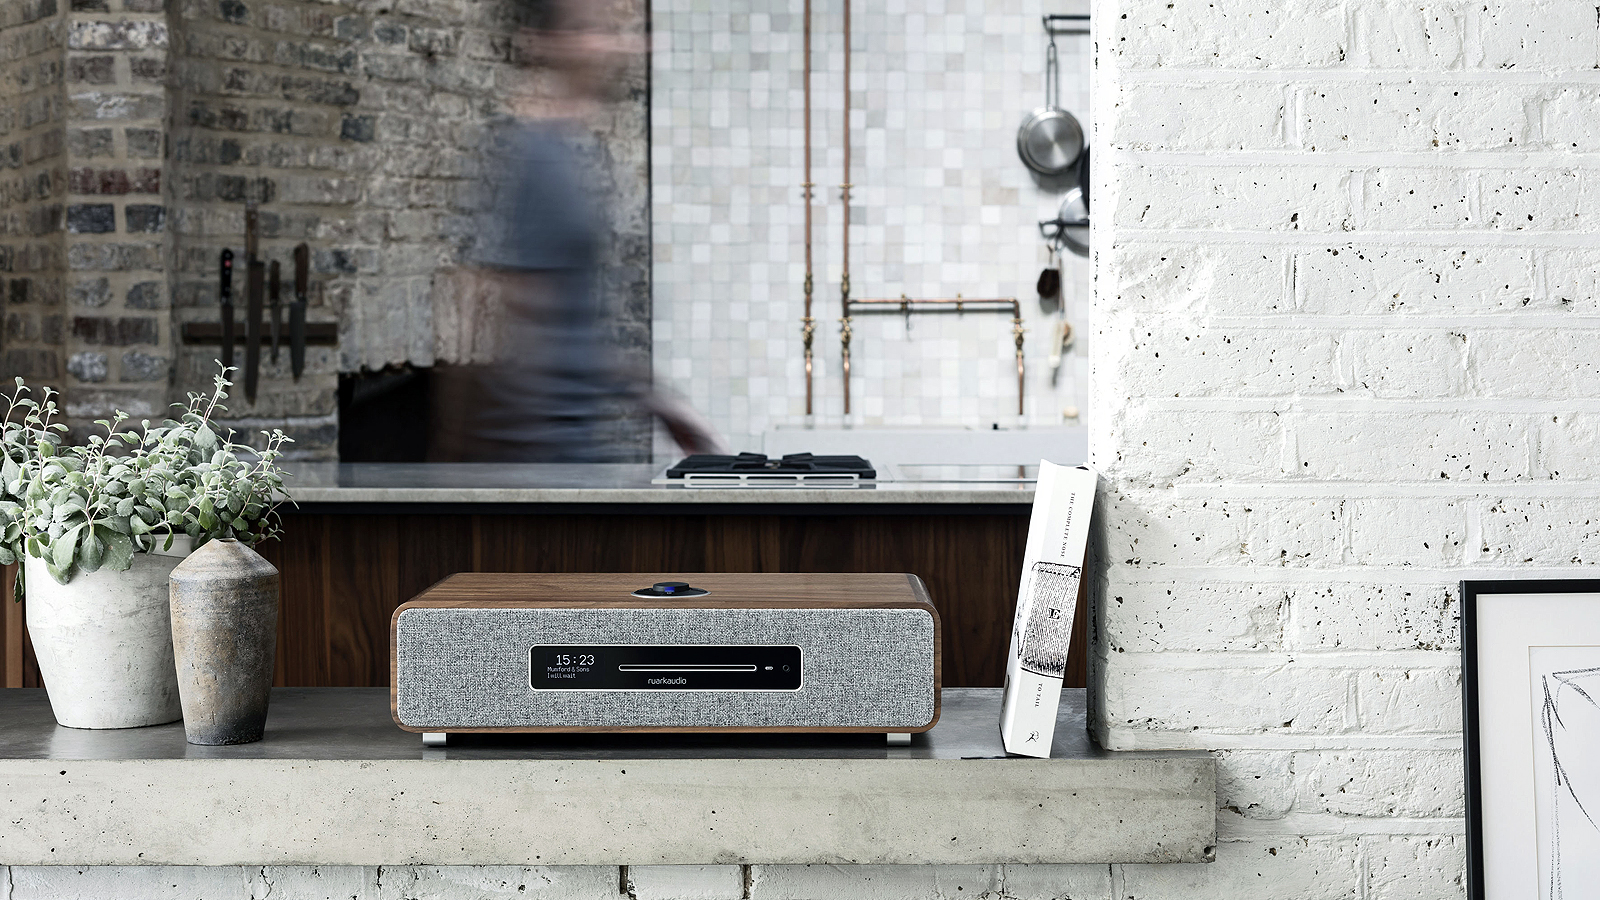 Ruark R5 review: the mini system for the 21st century and a real Naim Mu-so rival | T3